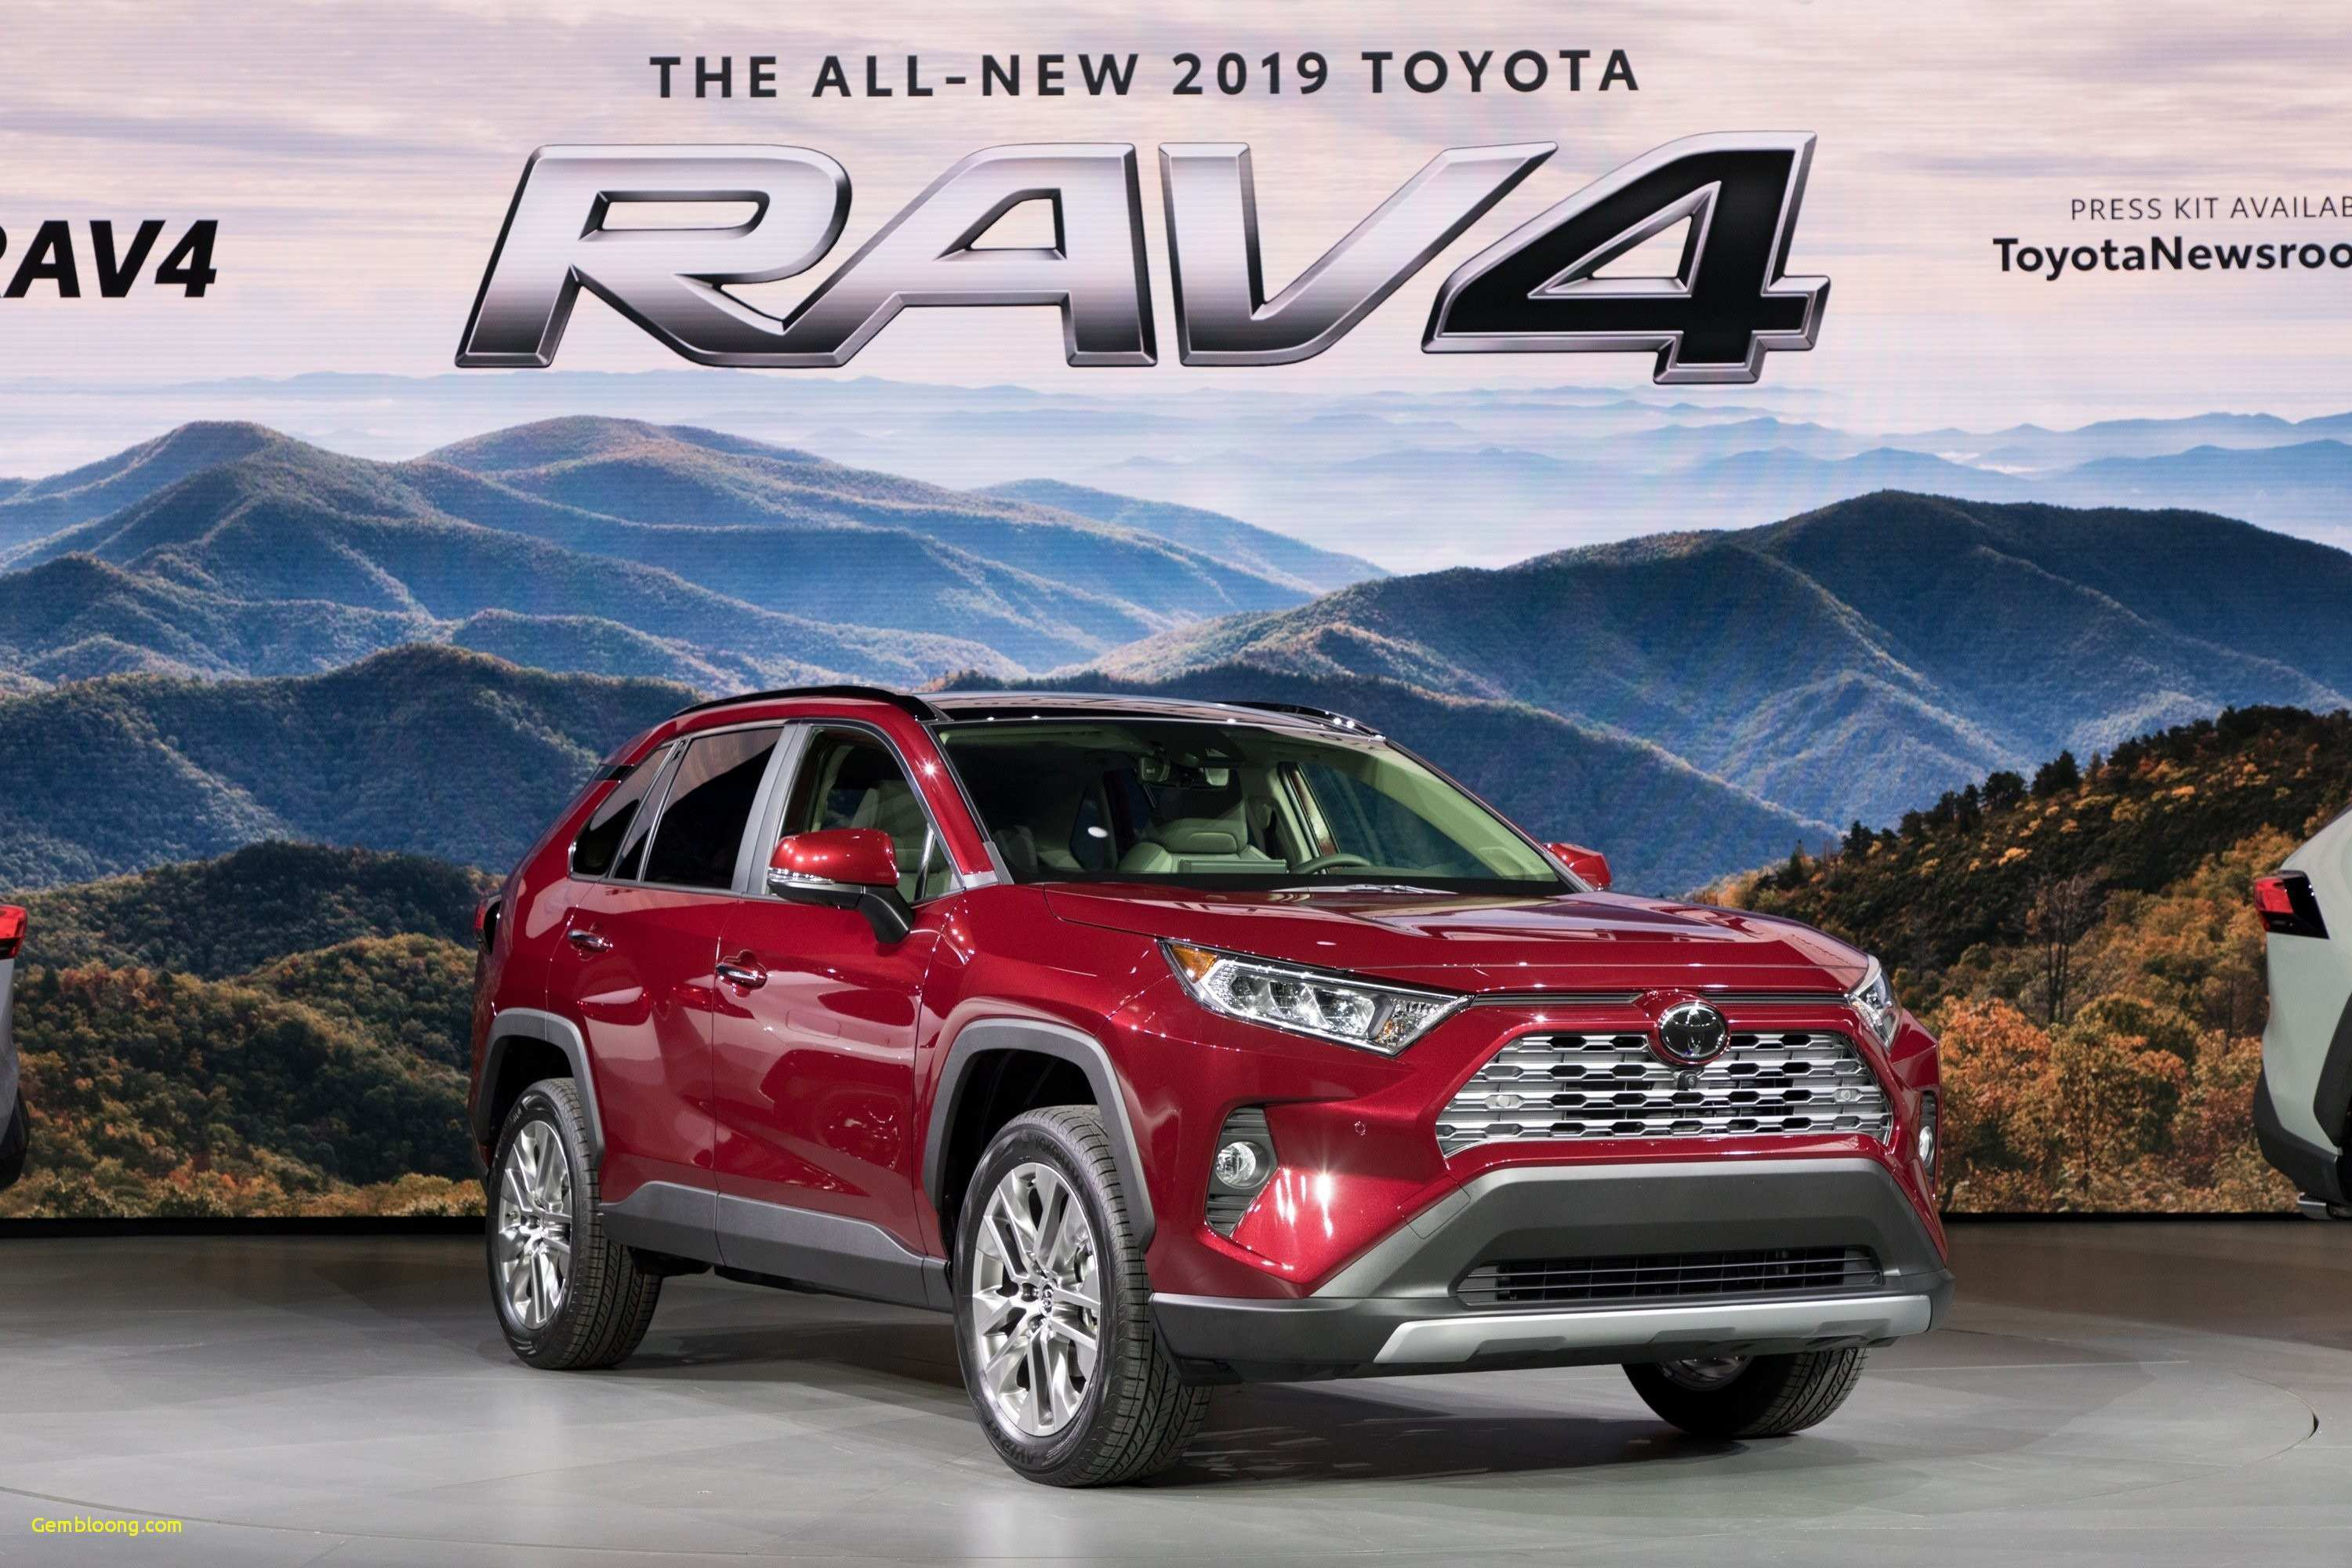 11 All New 2019 Toyota Rav4 Specs Picture Release Date And Review First Drive with 2019 Toyota Rav4 Specs Picture Release Date And Review